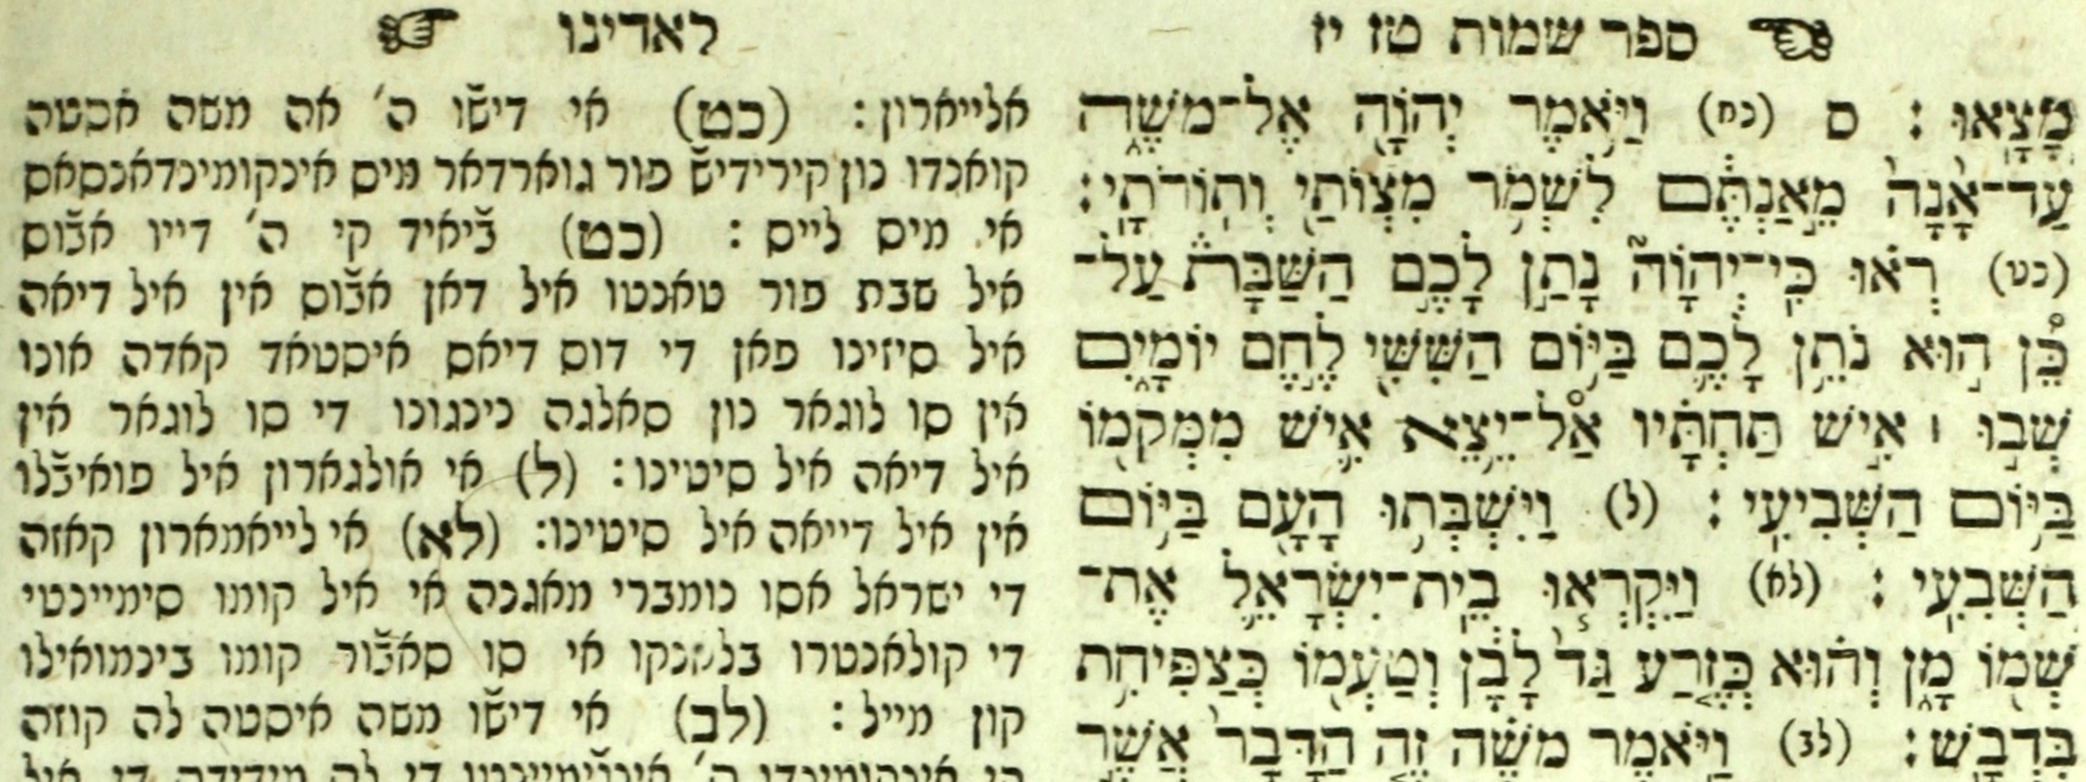 A Hebrew and Ladino edition of the Torah published in Vienna, 1813.